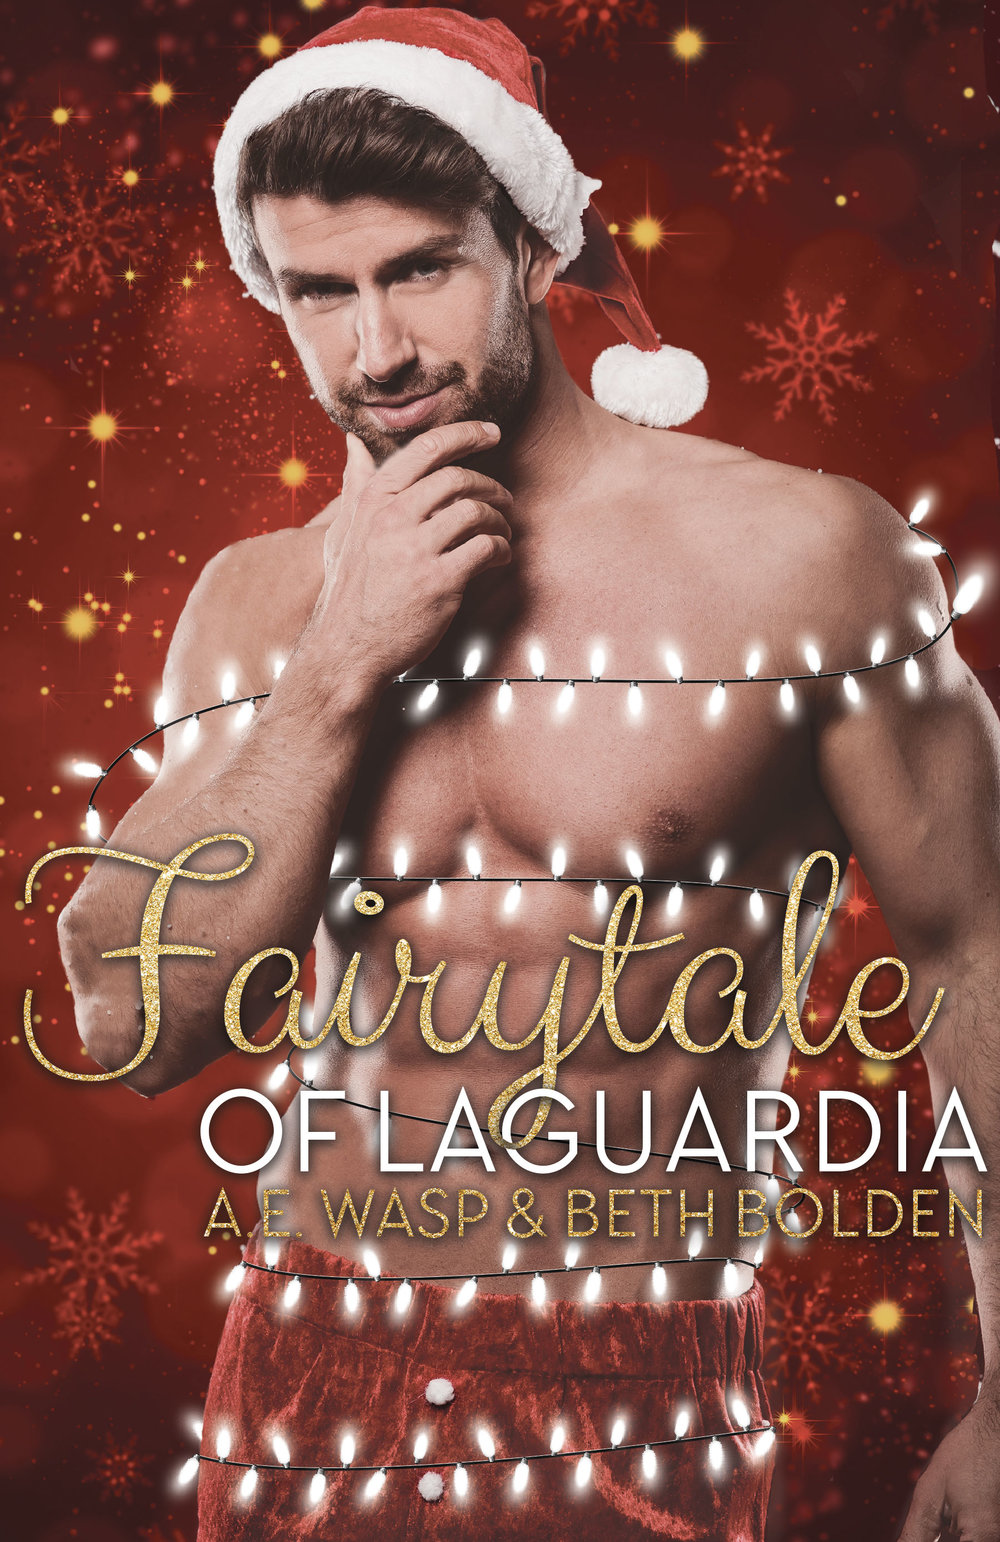 Fairytale-in-LaGuardia----EBook-Cover-Only.jpg